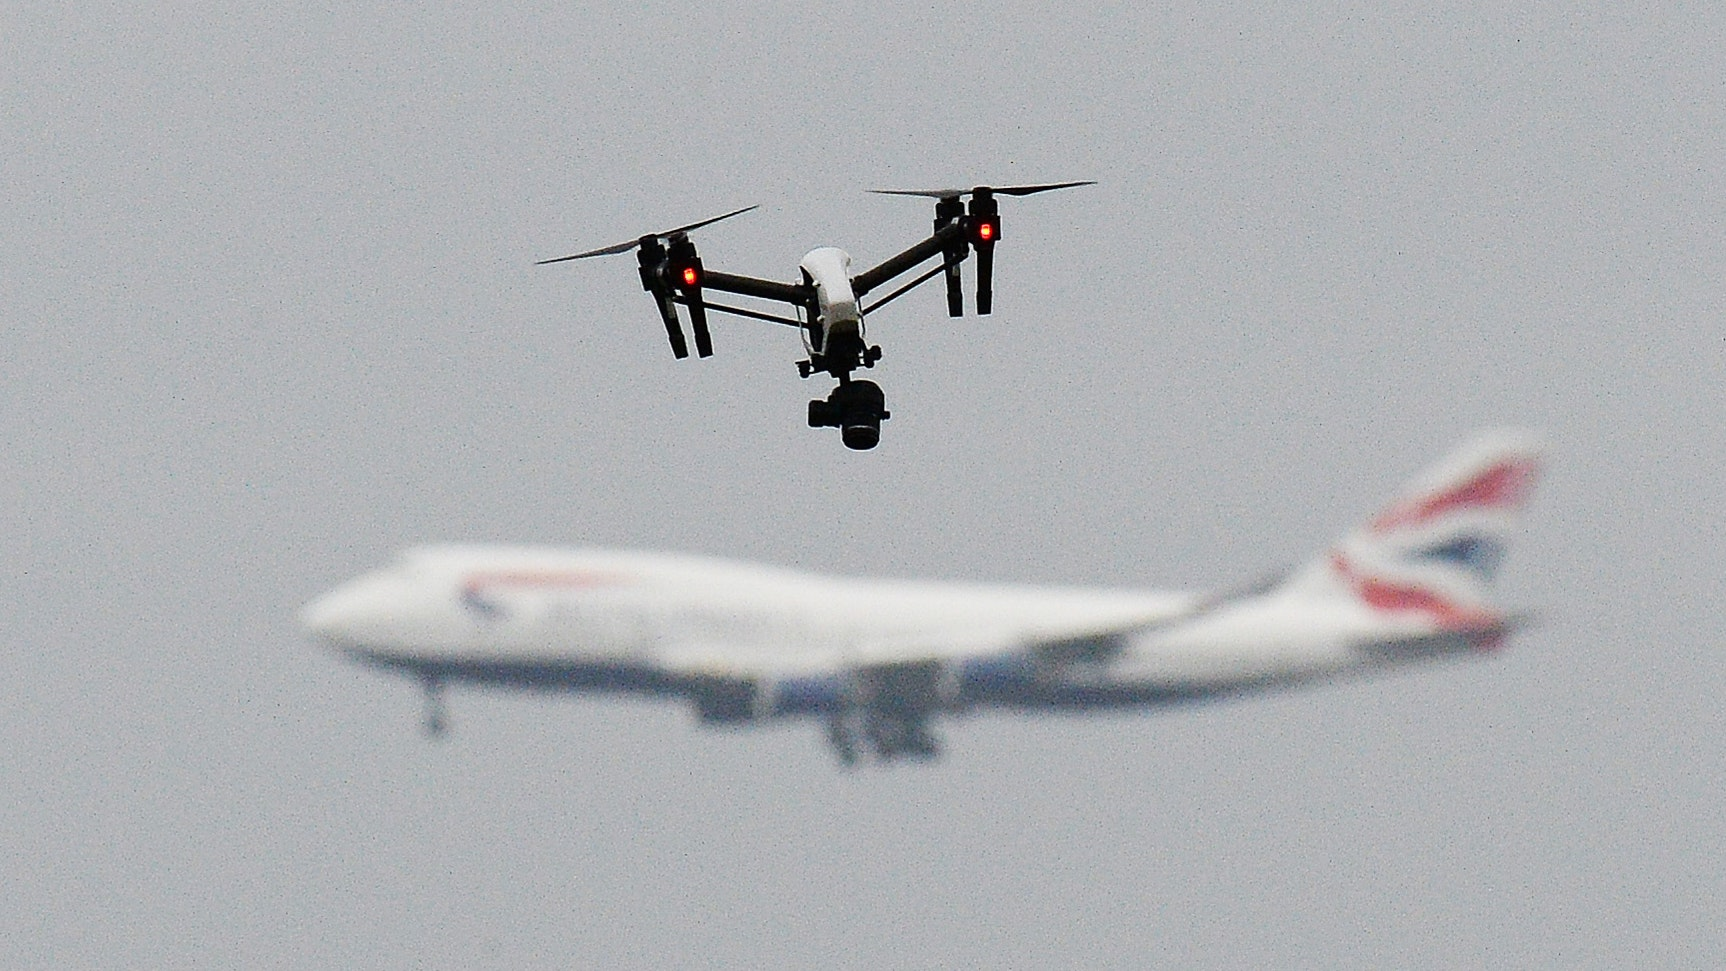 UK's Heathrow Airport suspends flights after drone sighting